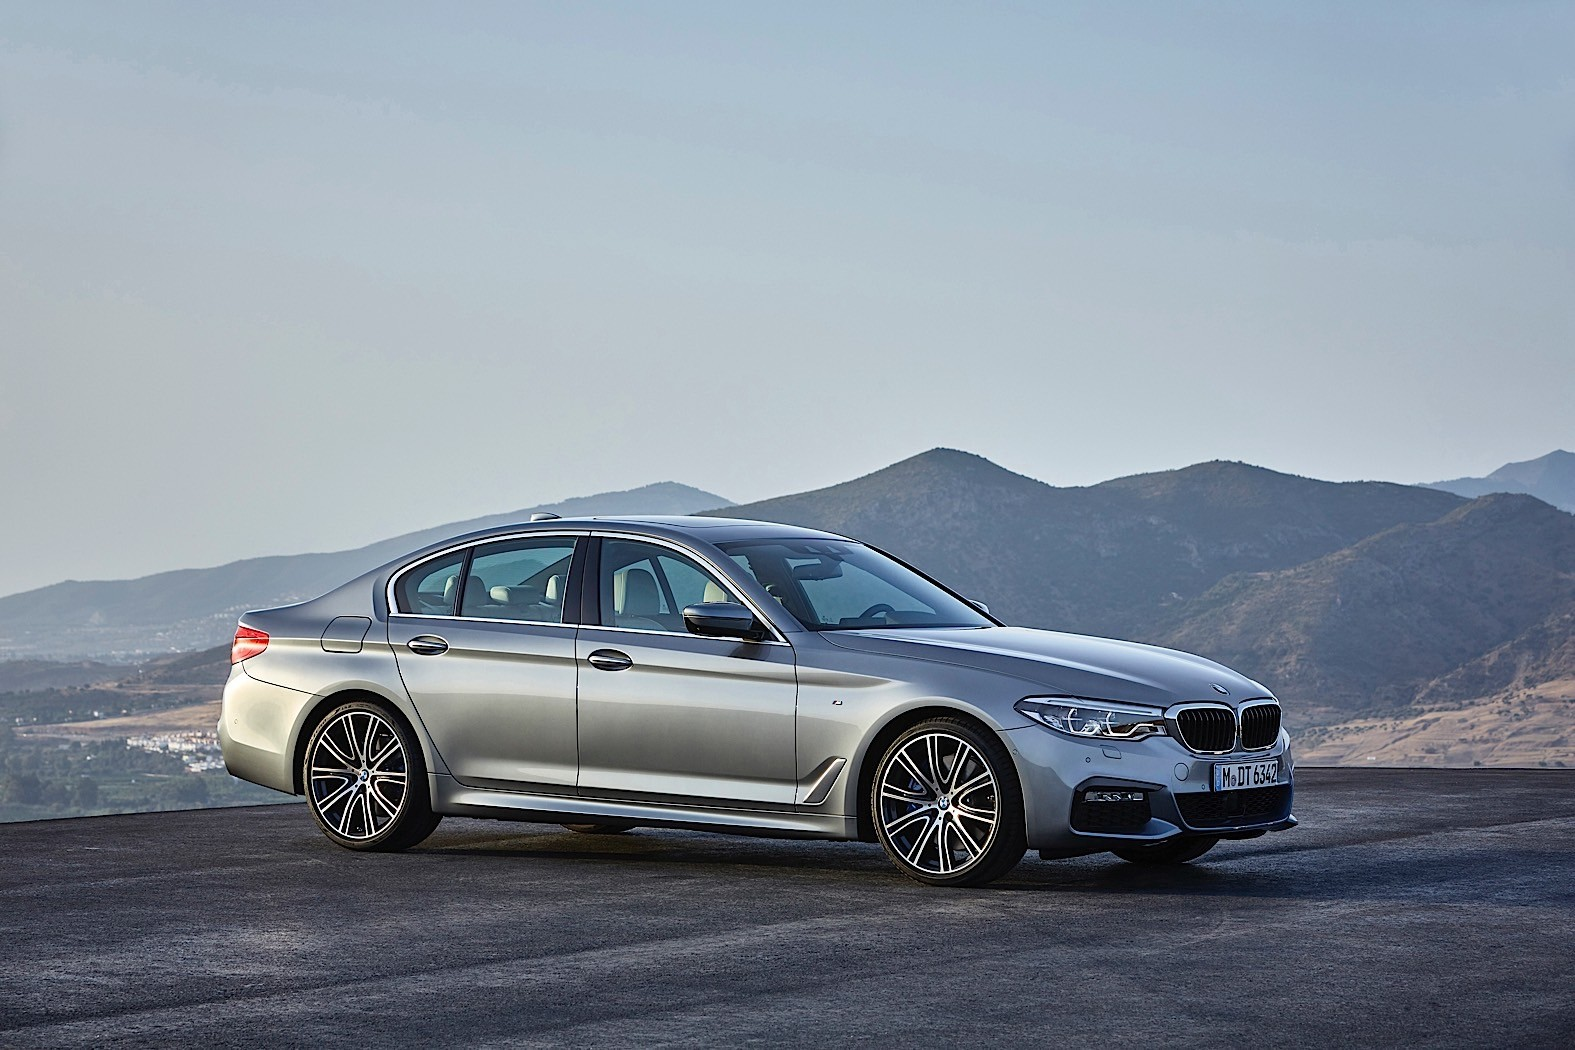 2017 bmw 5 series price announced in germany 520d starts from 45 200 autoevolution. Black Bedroom Furniture Sets. Home Design Ideas